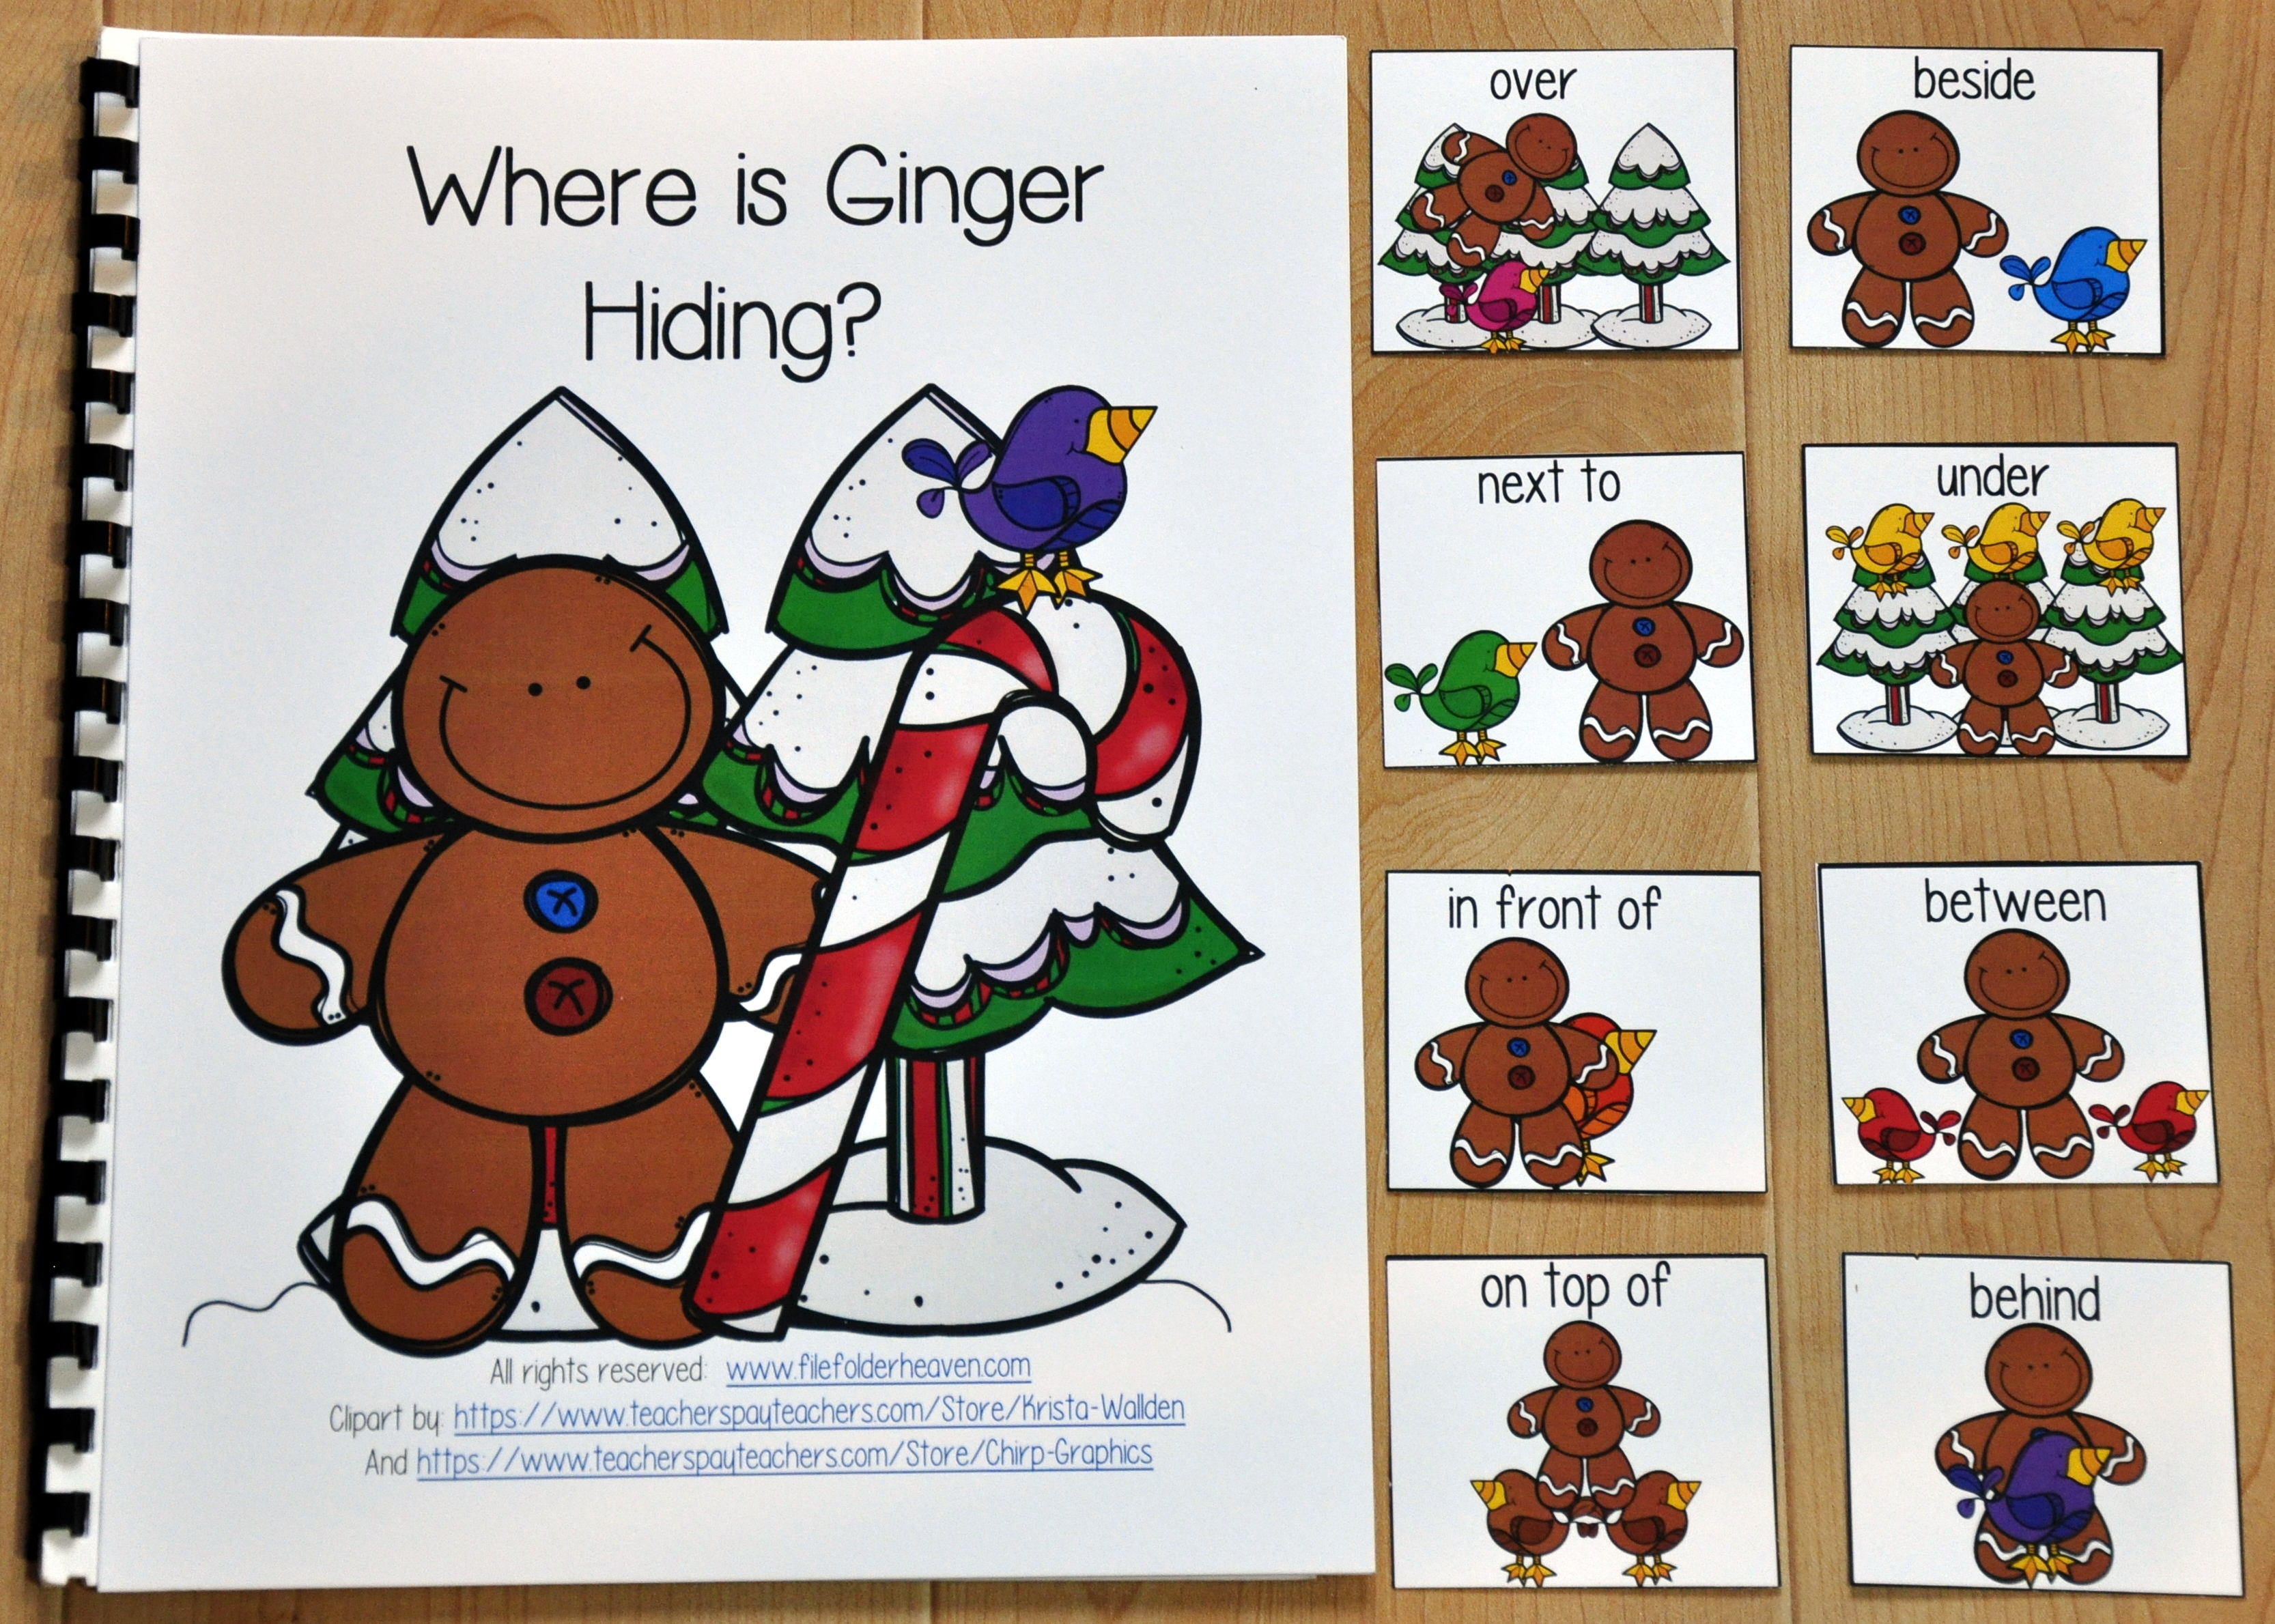 """Where is Ginger Hiding?"" Adapted Book"